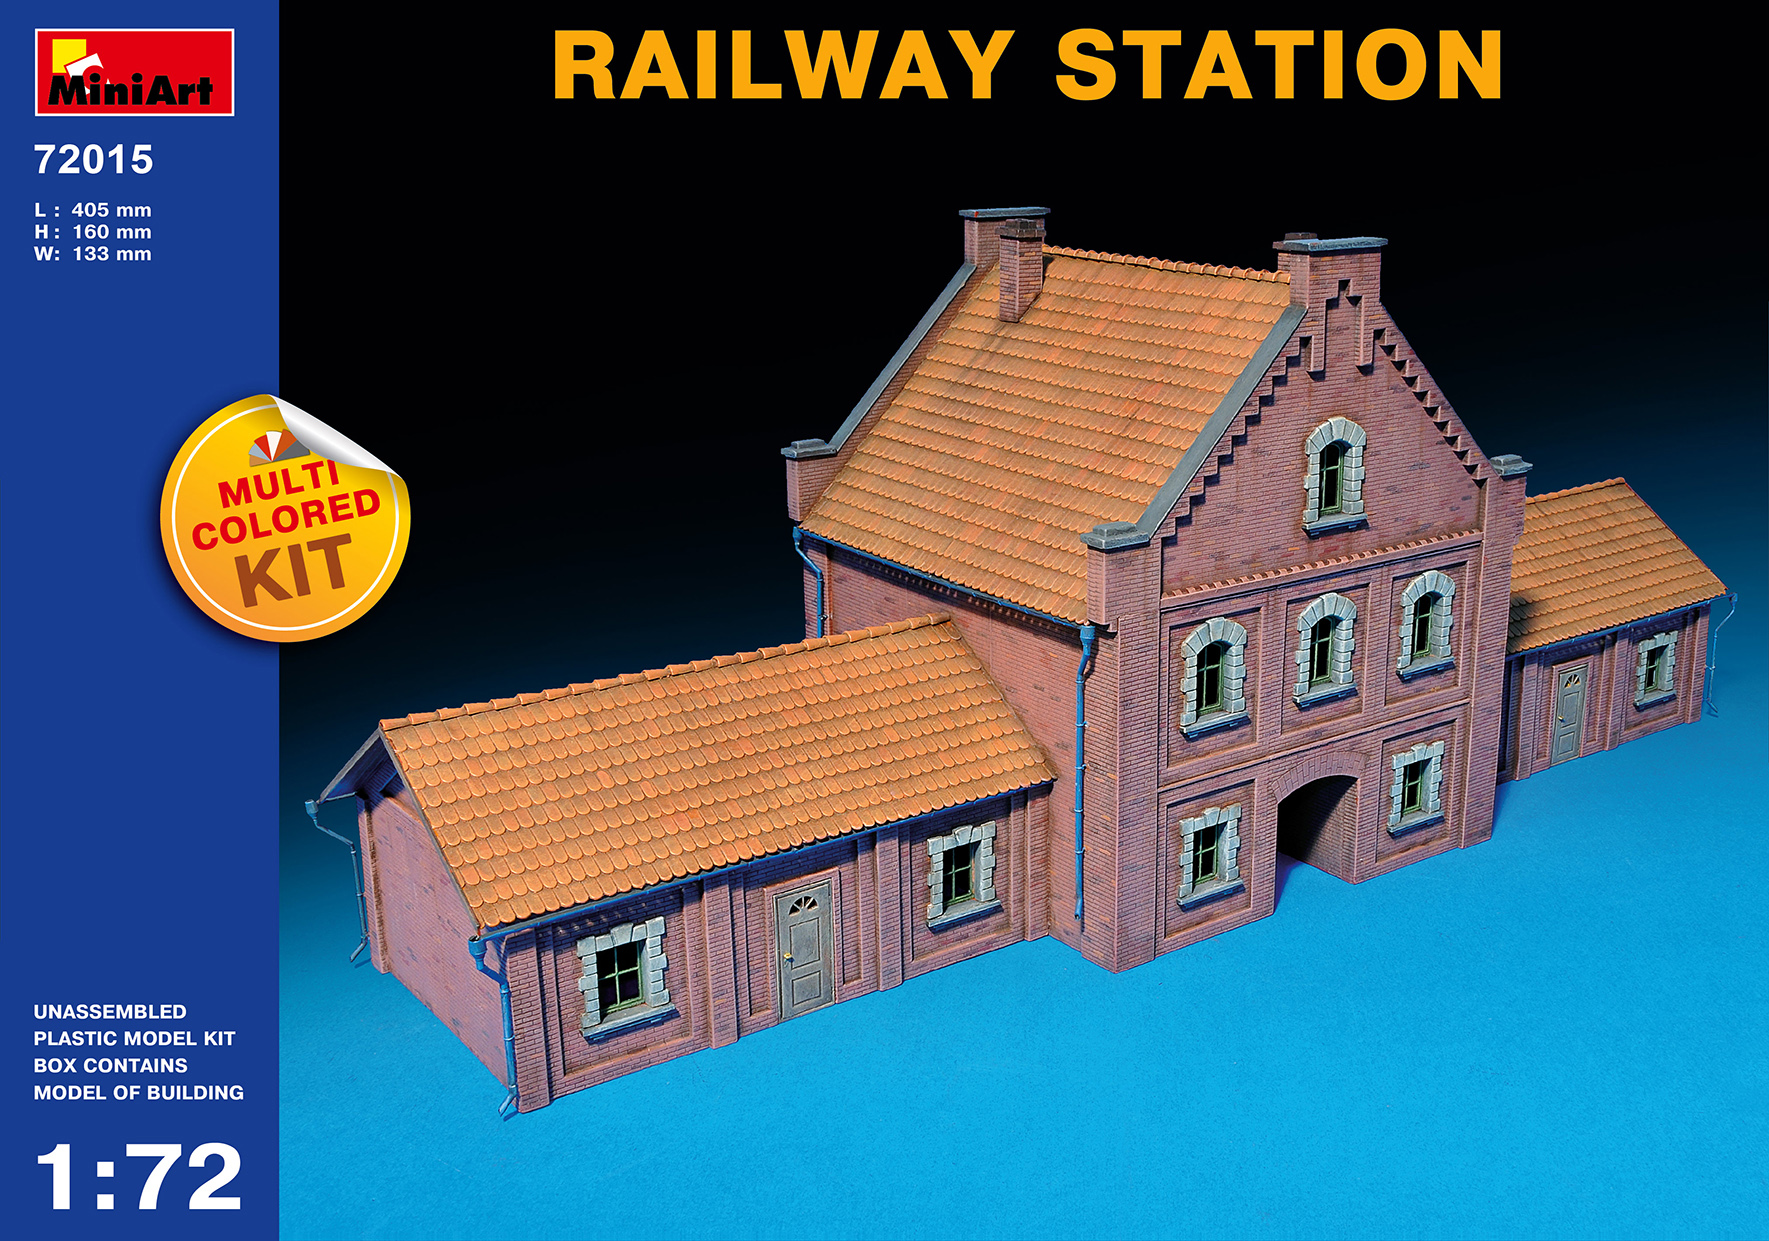 MiniArt 1/72 RAILWAY STATION # 72015